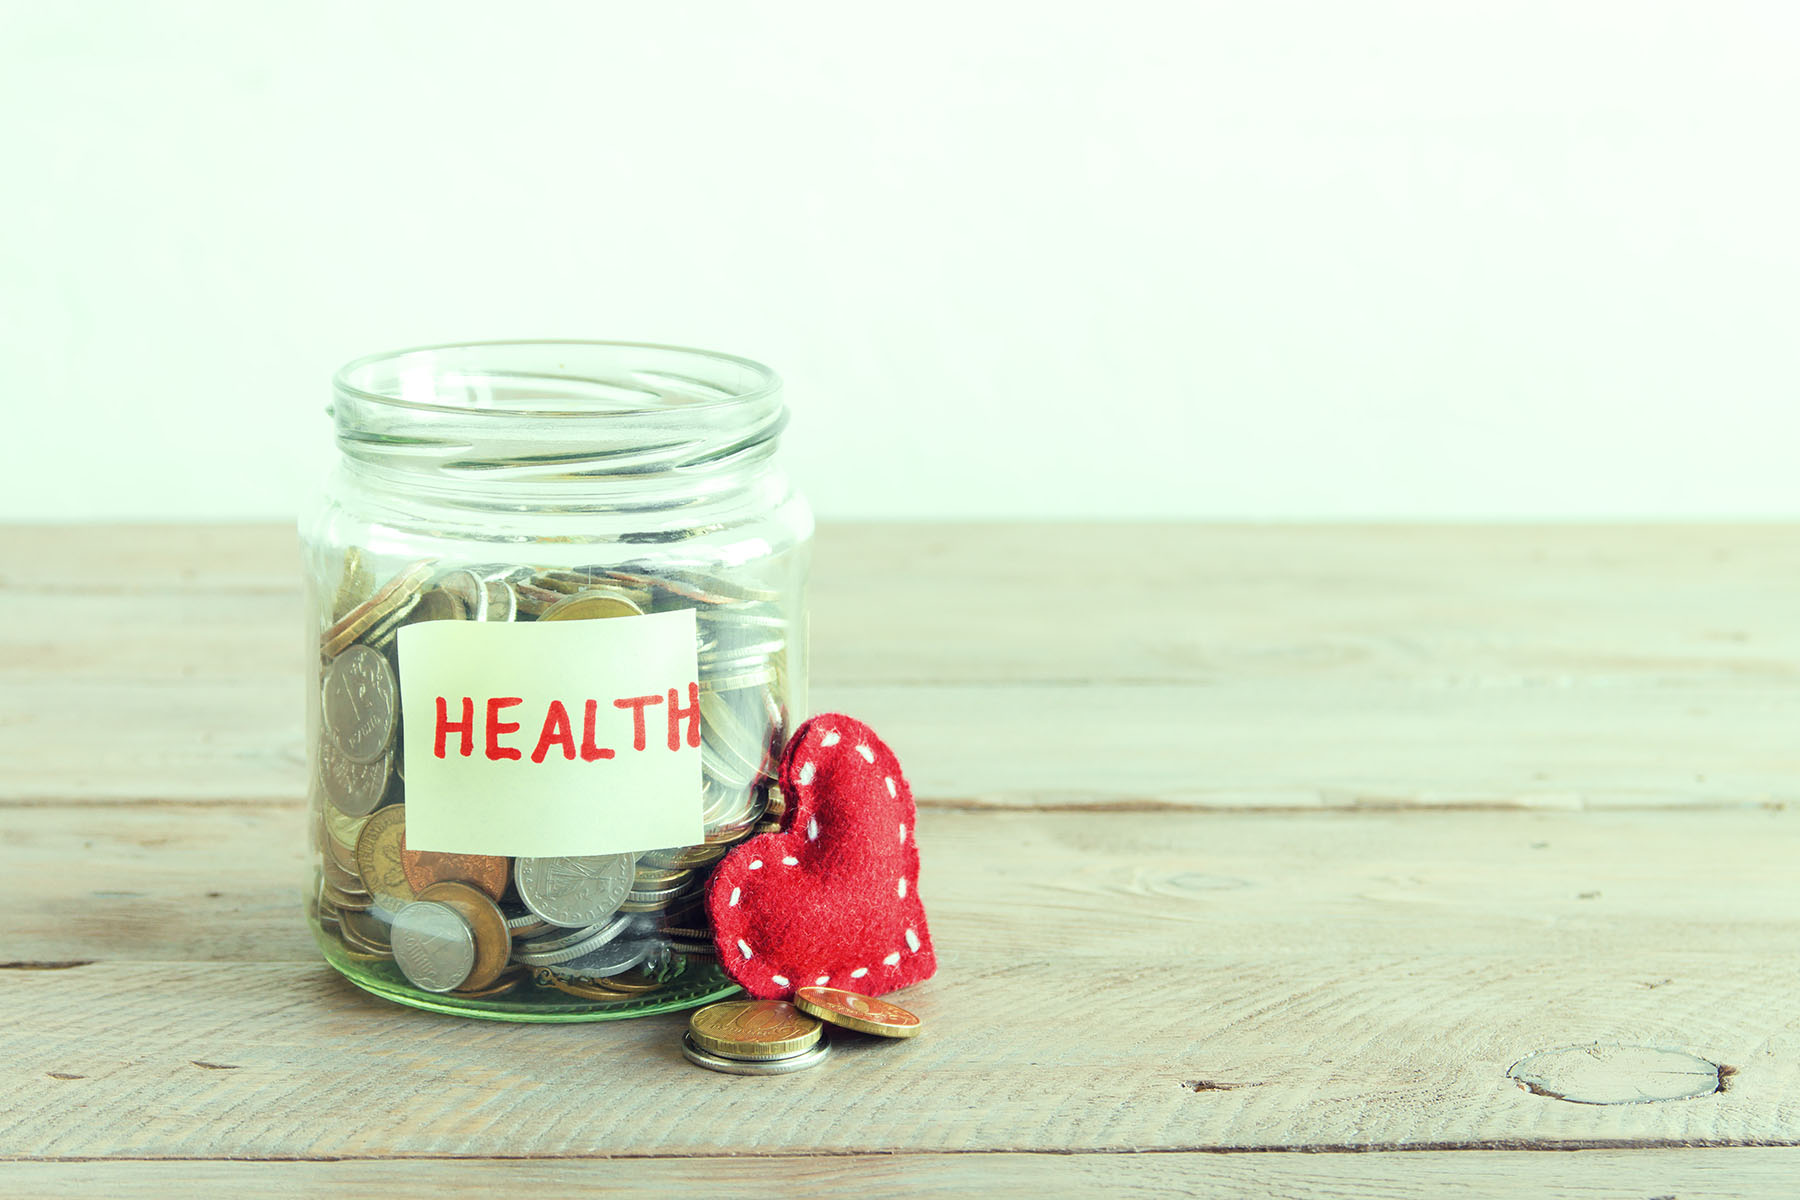 Coins in glass jar with red heart and Health label. Money savings, charity and donation concept, copy space.